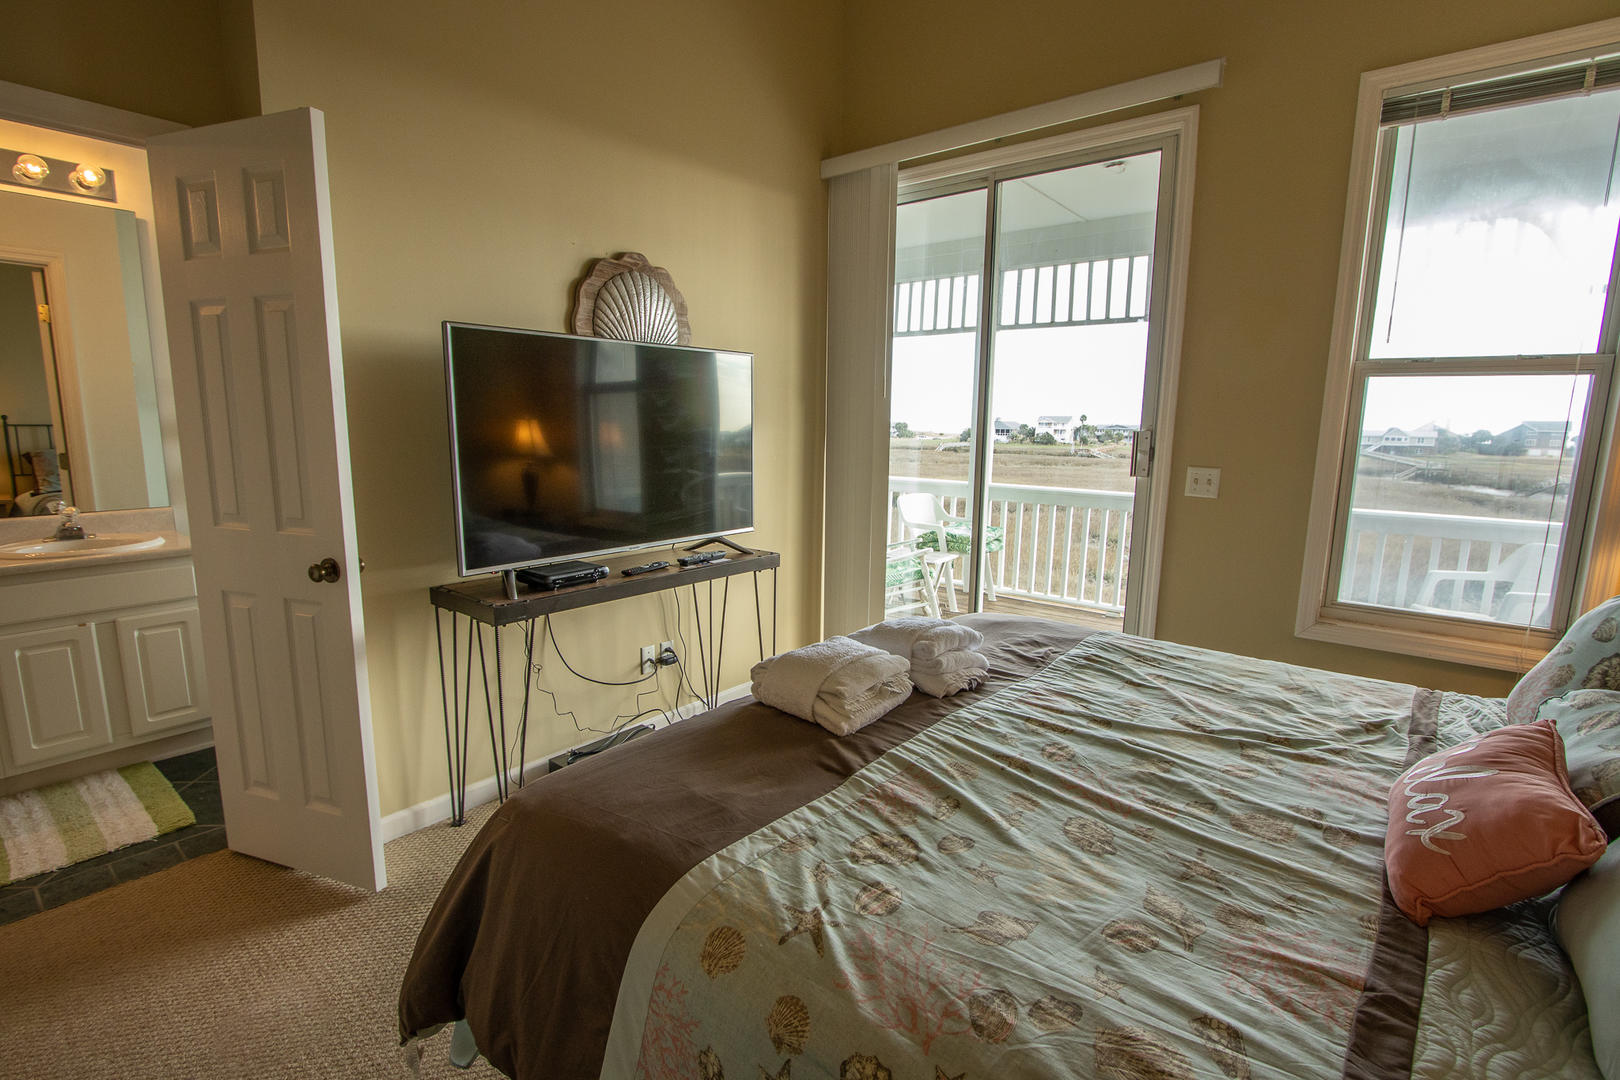 Master, 2nd floor, TV w/ DVD player, access to balcony, en suite full bath